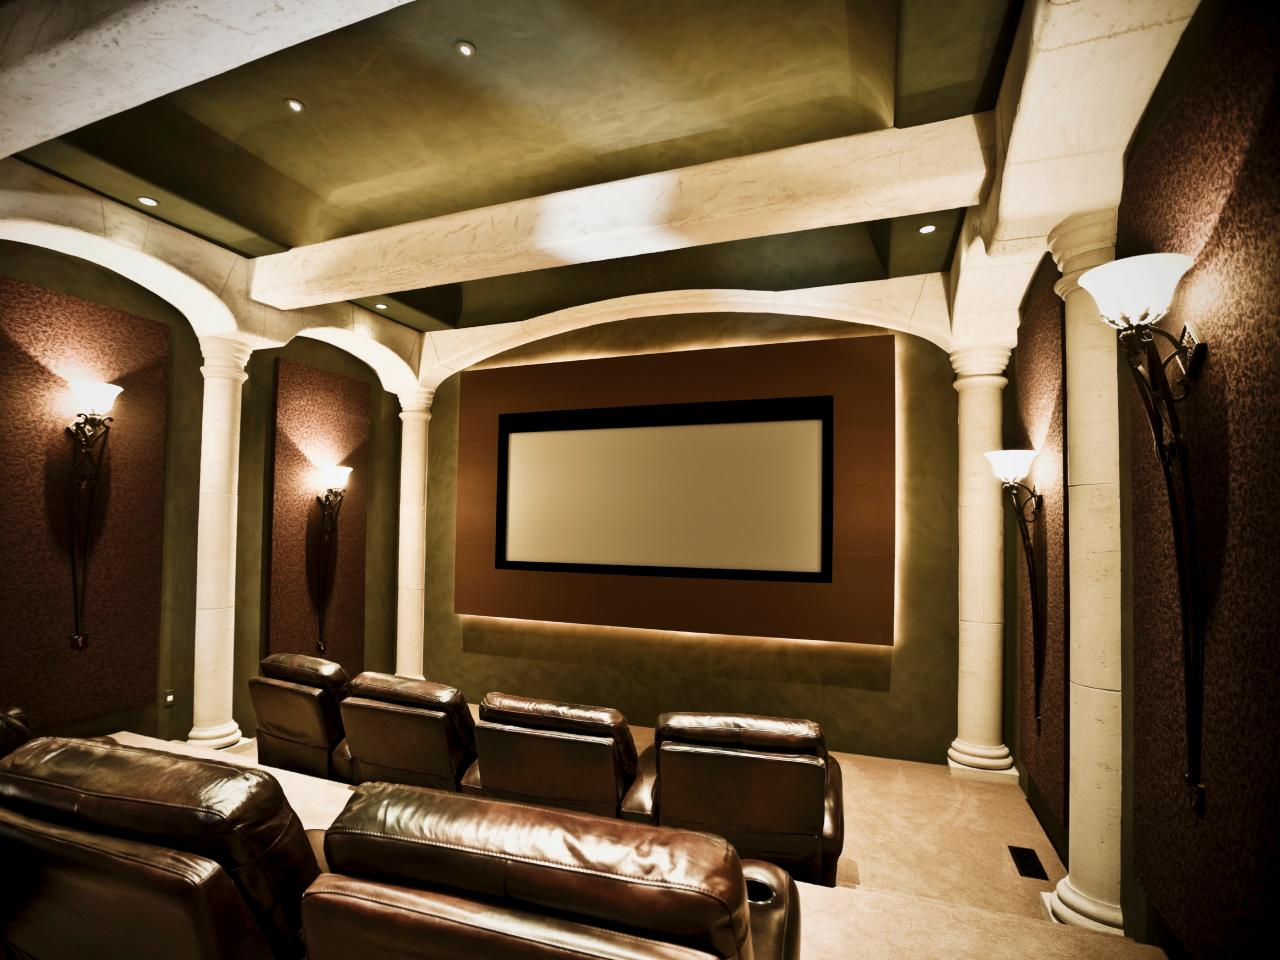 Home Theater Design Ideas black color themed home theater designs Home Theater Design Ideas Pictures Tips Options Hgtv Home Theatre Design